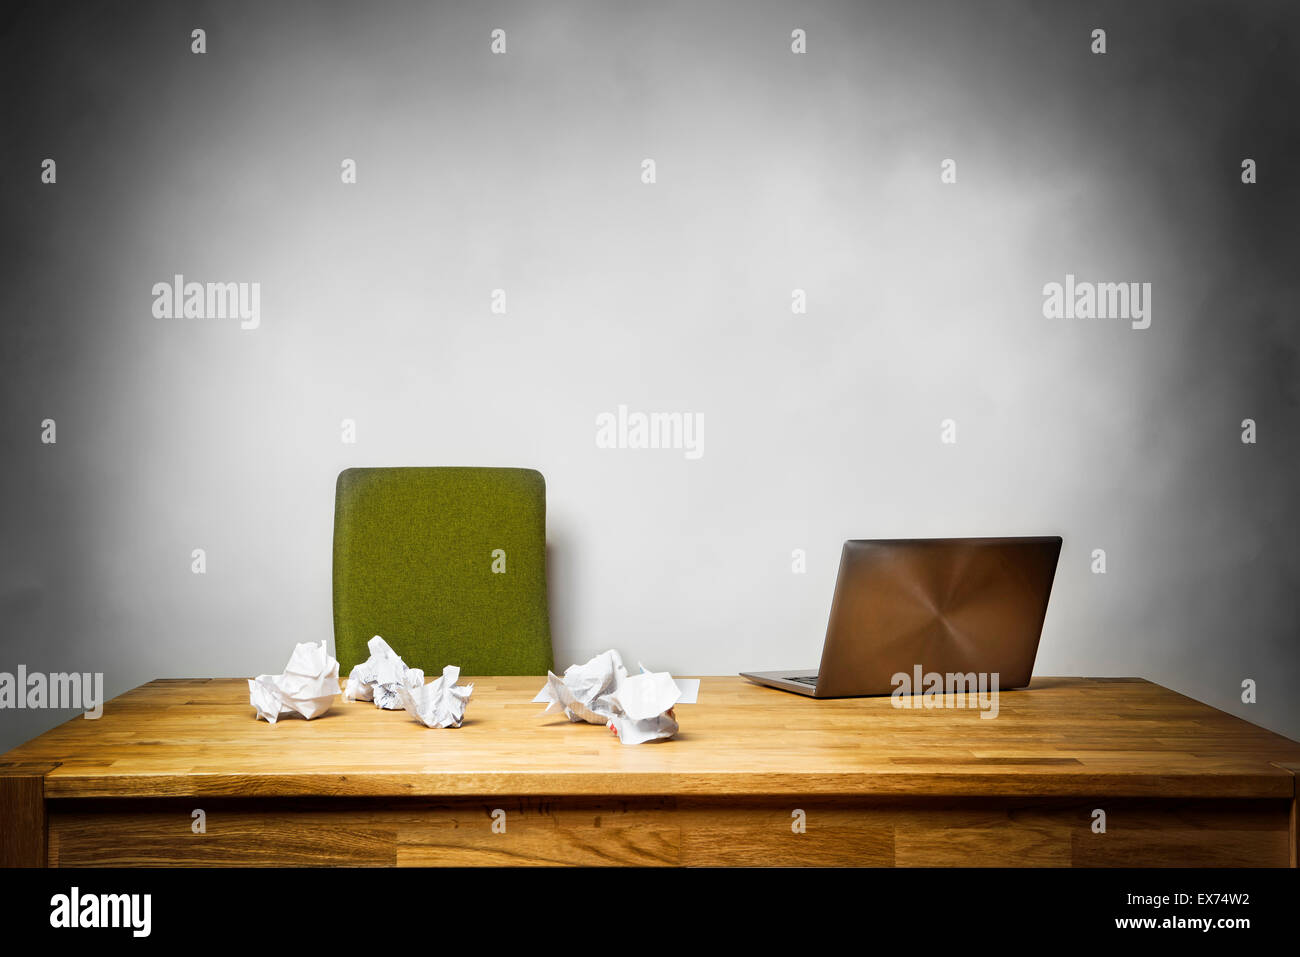 Image of an empty office with chair, laptop and crumpled papers on the desk - Stock Image